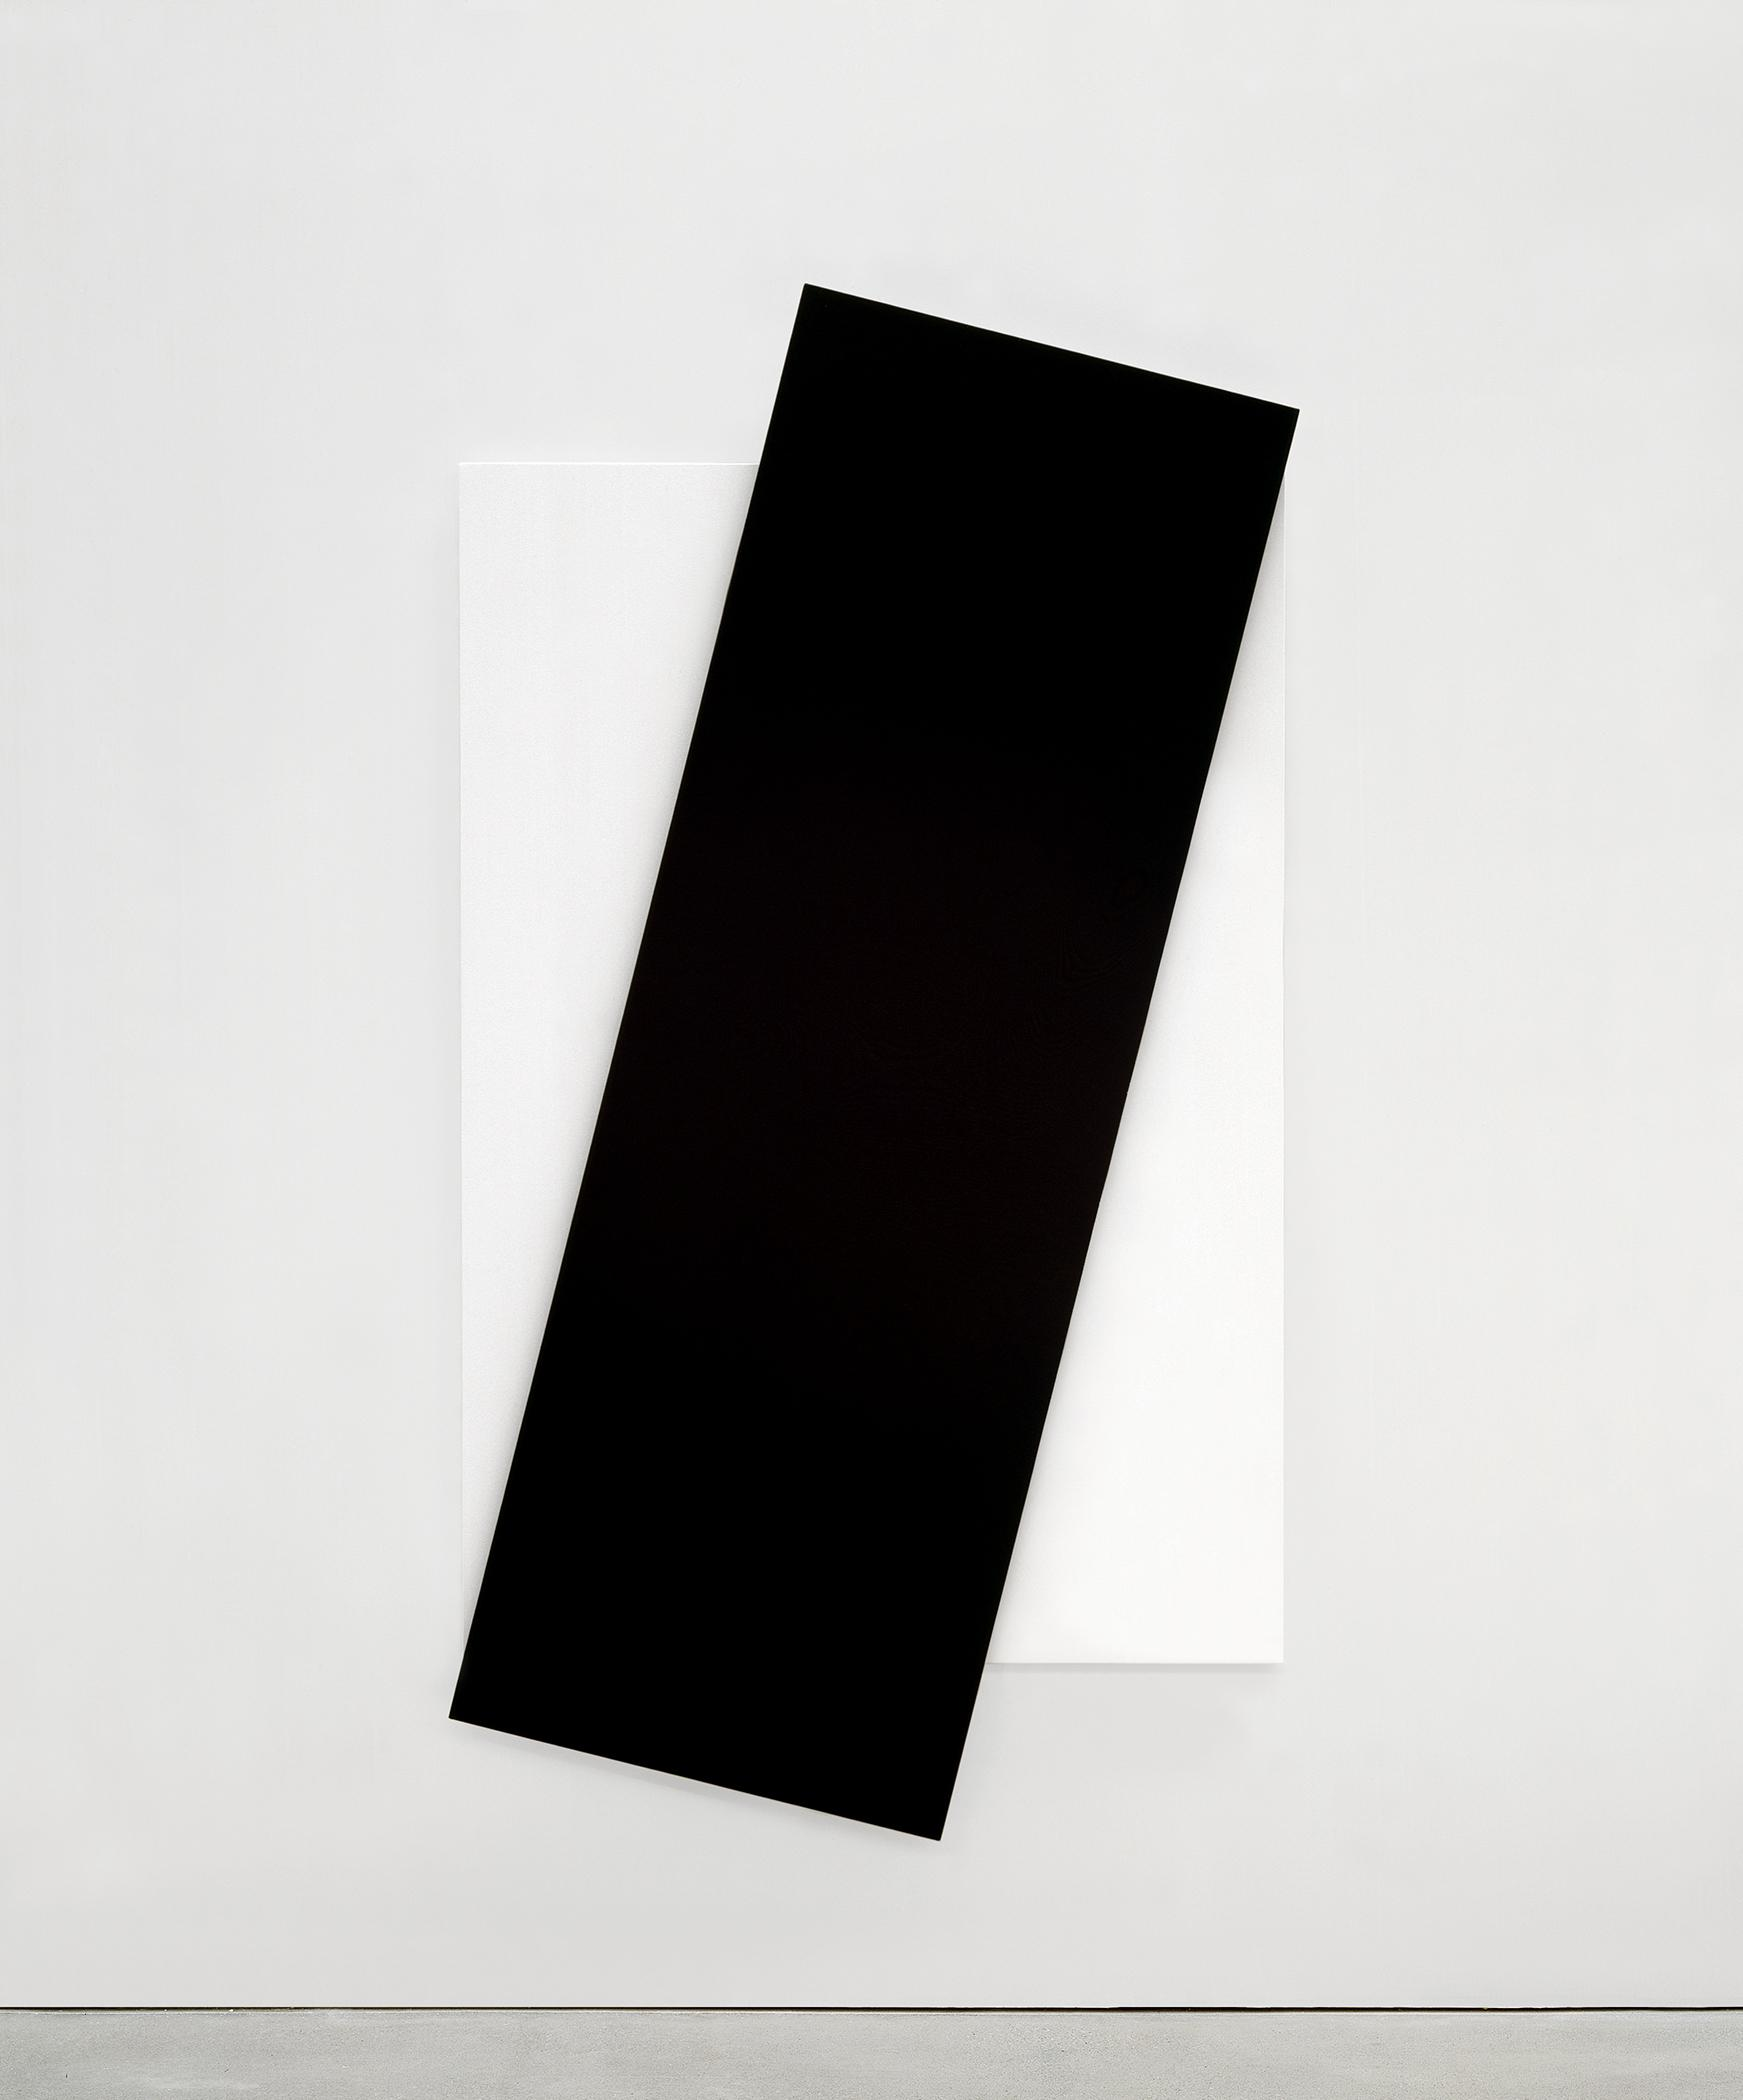 Ellsworth Kelly, Black Diagonal, 2007, . Oil on canvas, Private collection